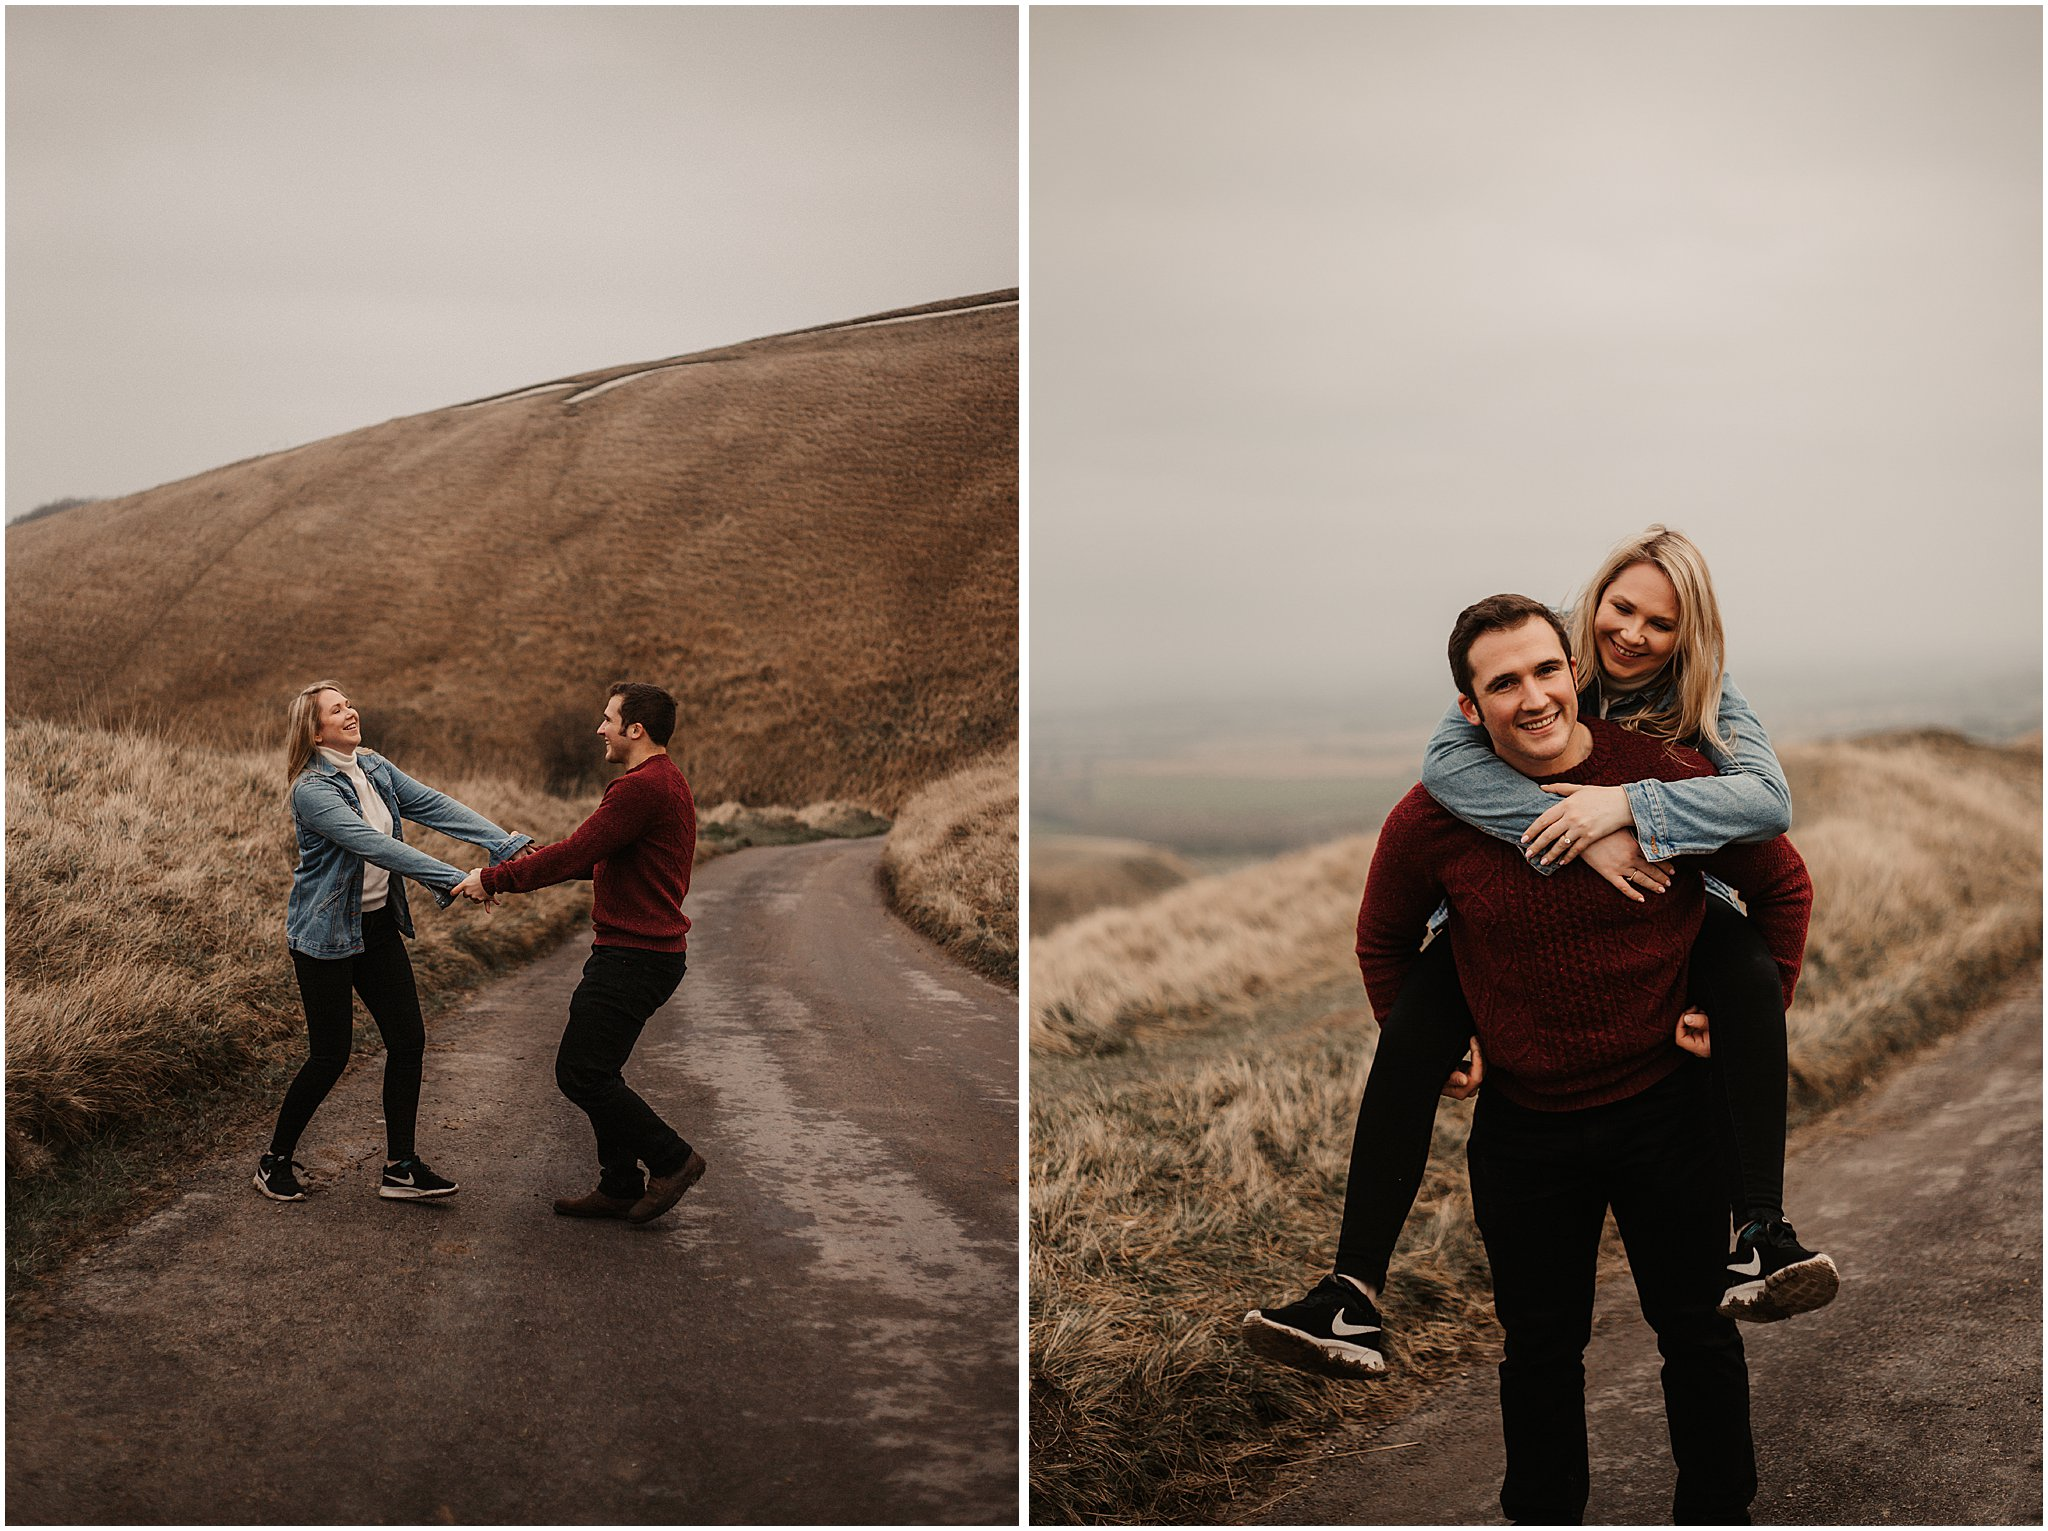 Mike & Charley_s Winter Engagement Shoot Wiltshire-59.jpg